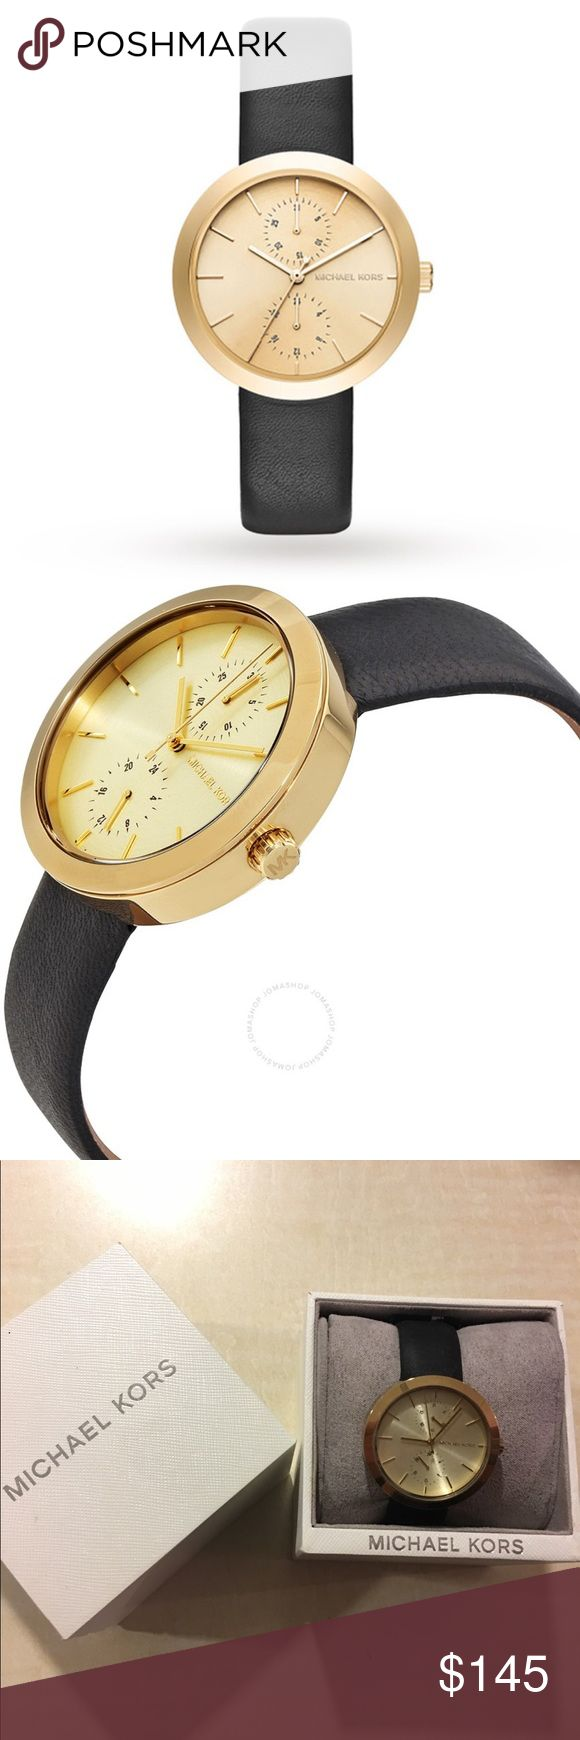 Michal Kors Garner Gold Dial Ladies Watch Beautiful new Michael Kors watching soft black leather strap. Has two dials on the watch. Michael Kors Accessories Watches